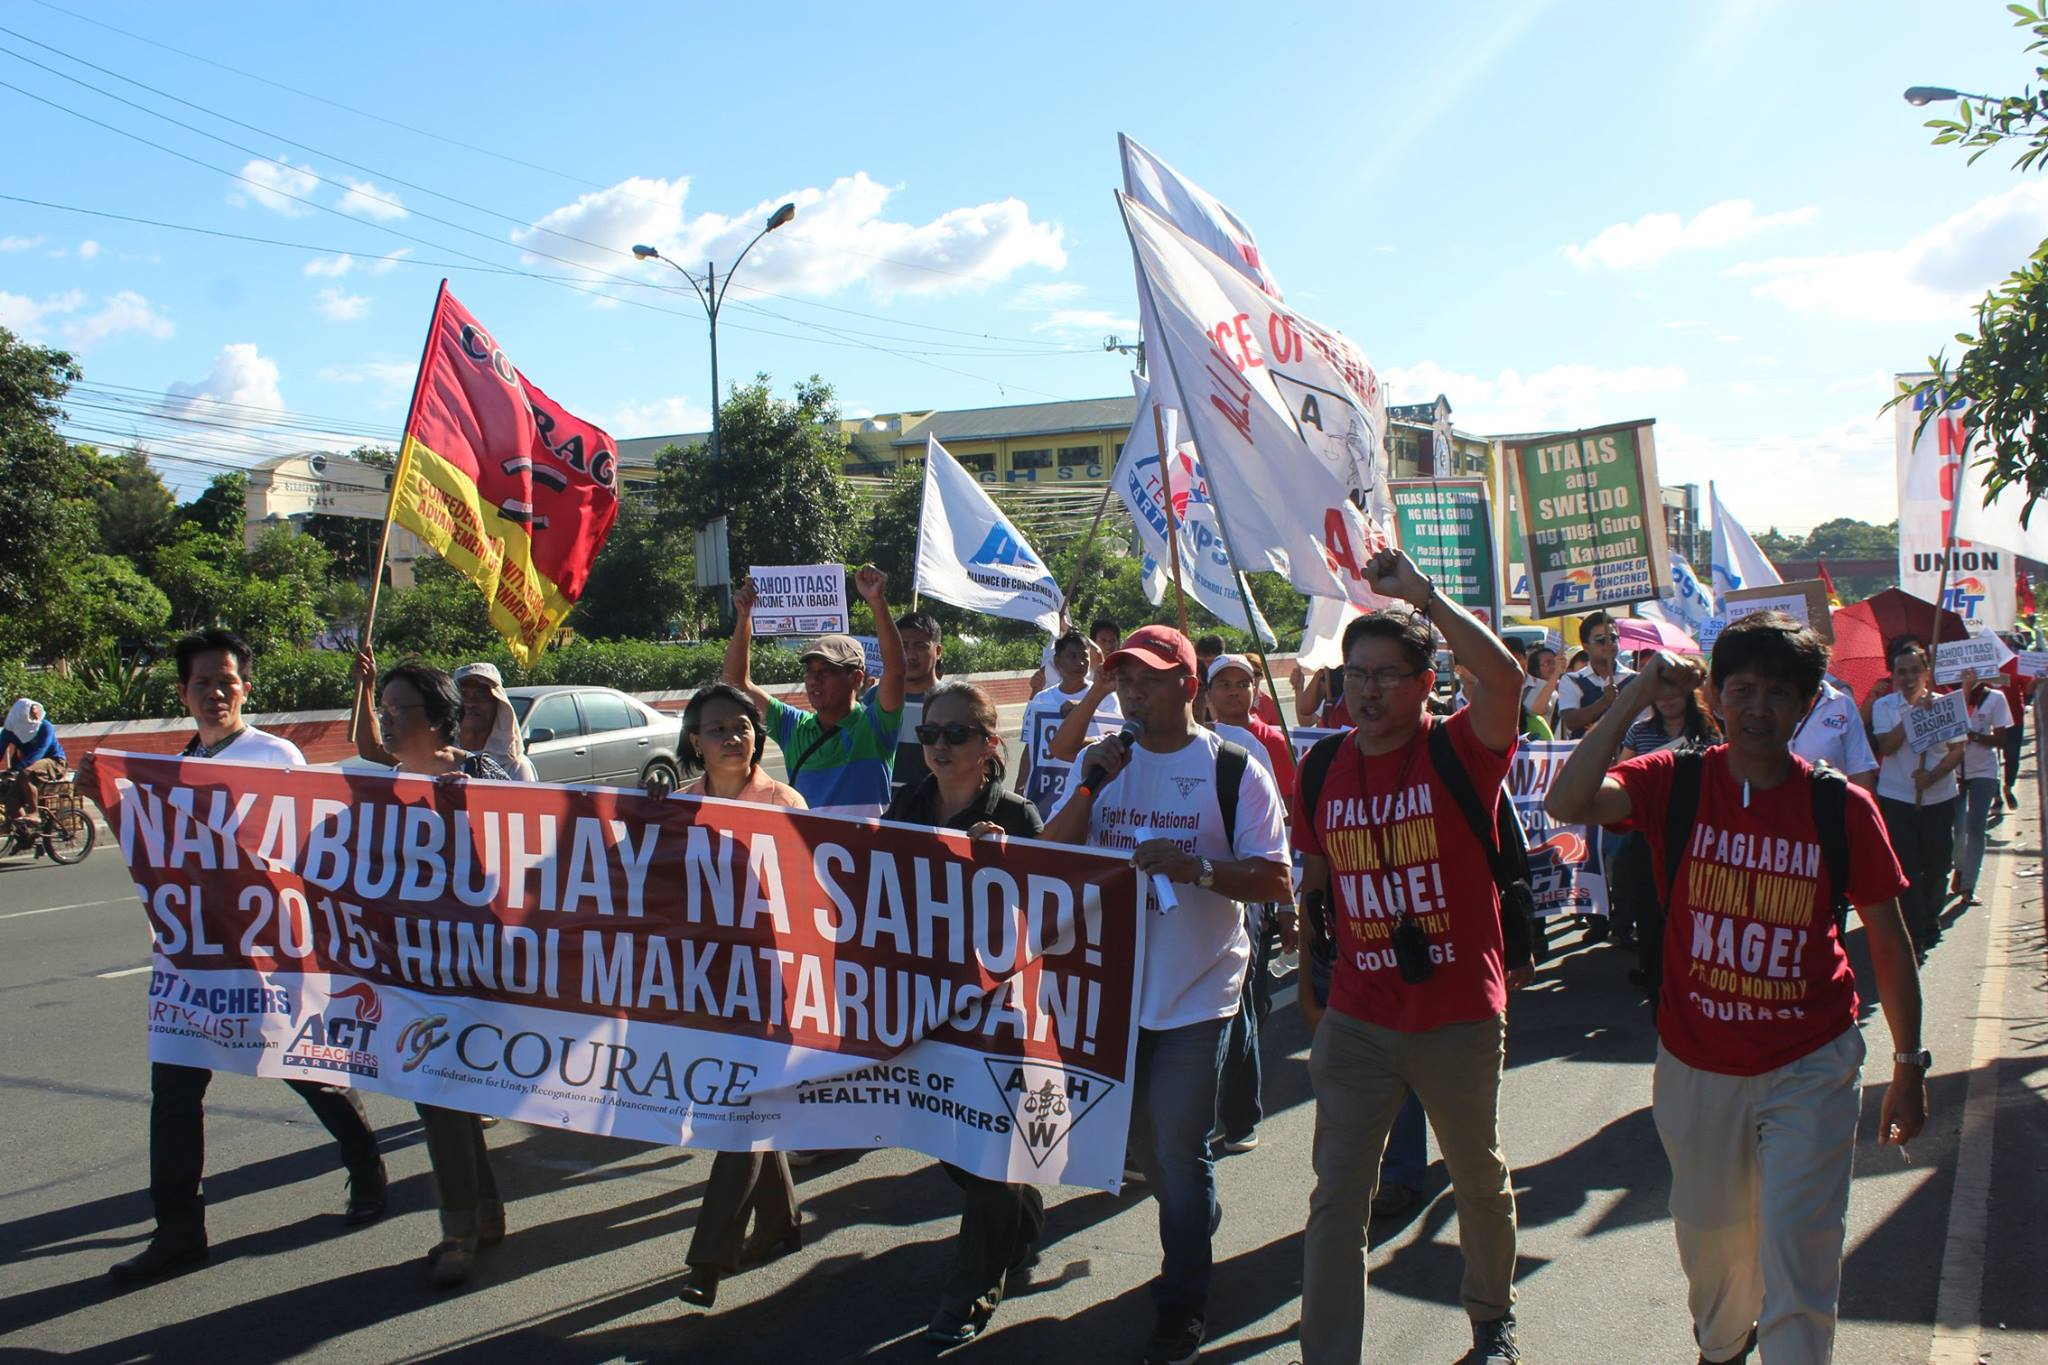 Public school teachers led by Alliance of Concerned Teachers (ACT) was joined by the All Workers Unity in their protest against the Salary Standardization Law of 2015 in the House of Representatives on Monday, Nov. 23. (Contributed photo)